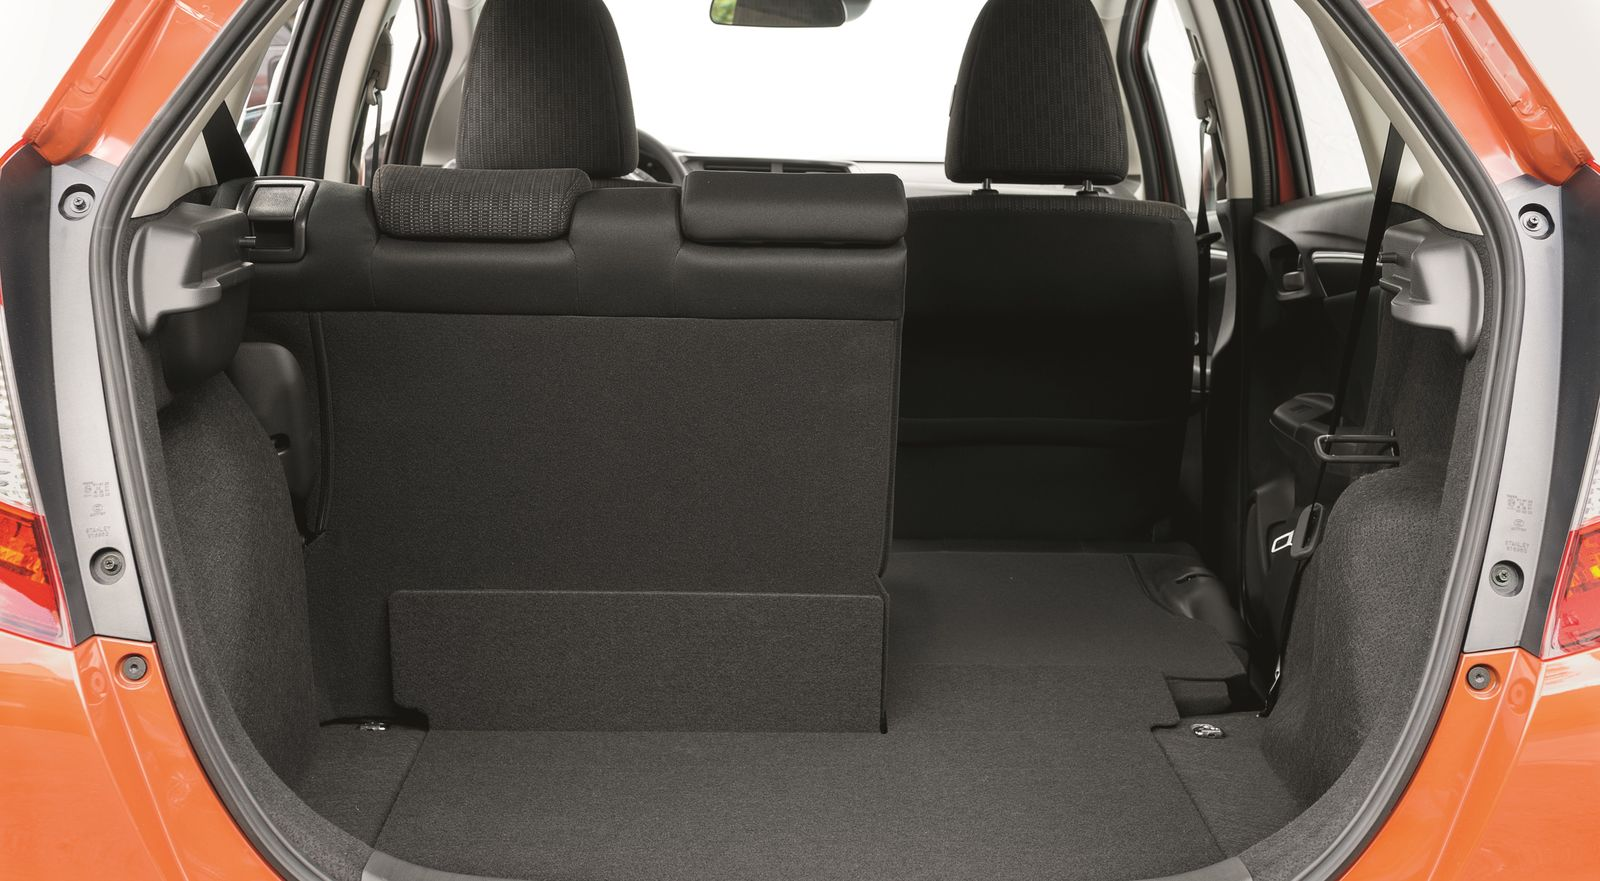 2007 honda fit interior dimensions. Black Bedroom Furniture Sets. Home Design Ideas